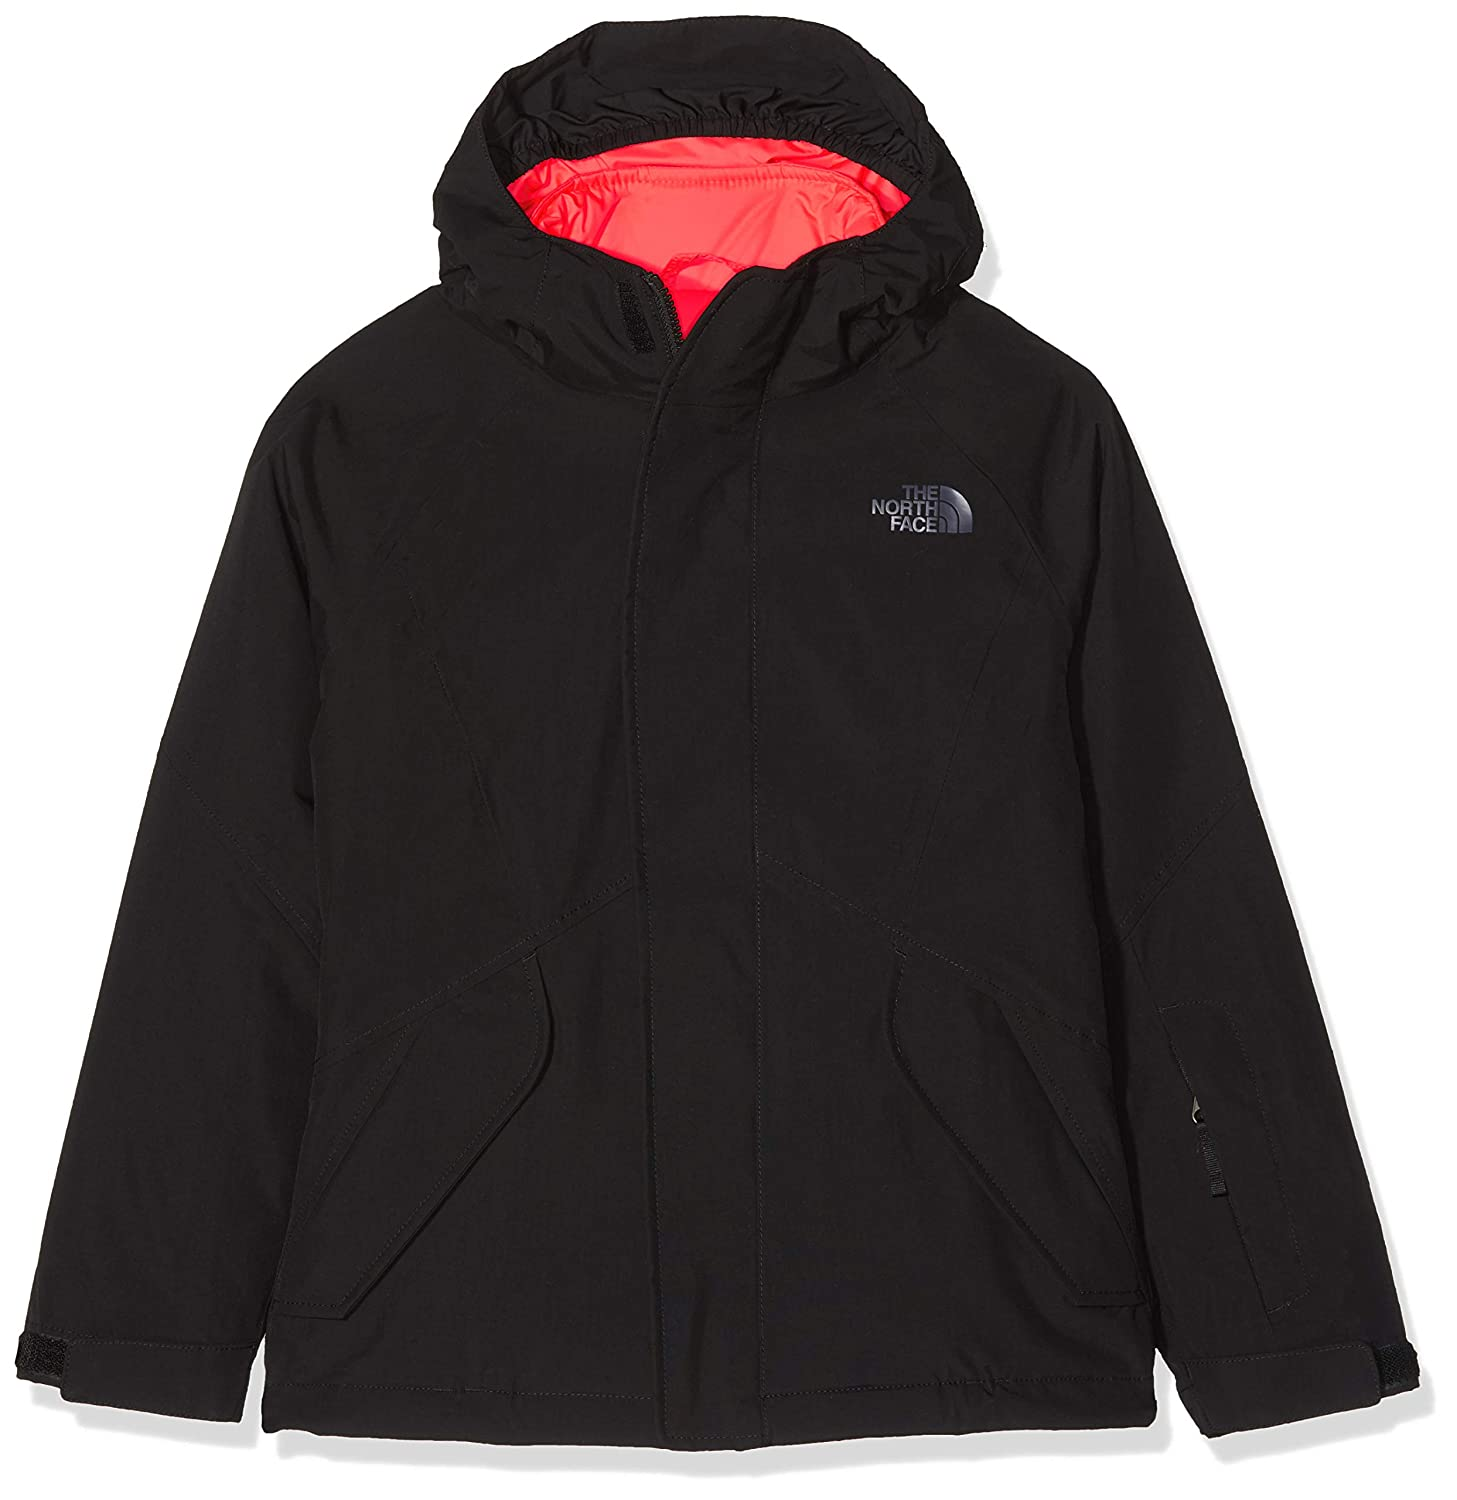 Tnf Blk Tnf Blk M THE NORTH FACE G Kira Triclimate JKT -Fall 2018- TNF noir TNF noir